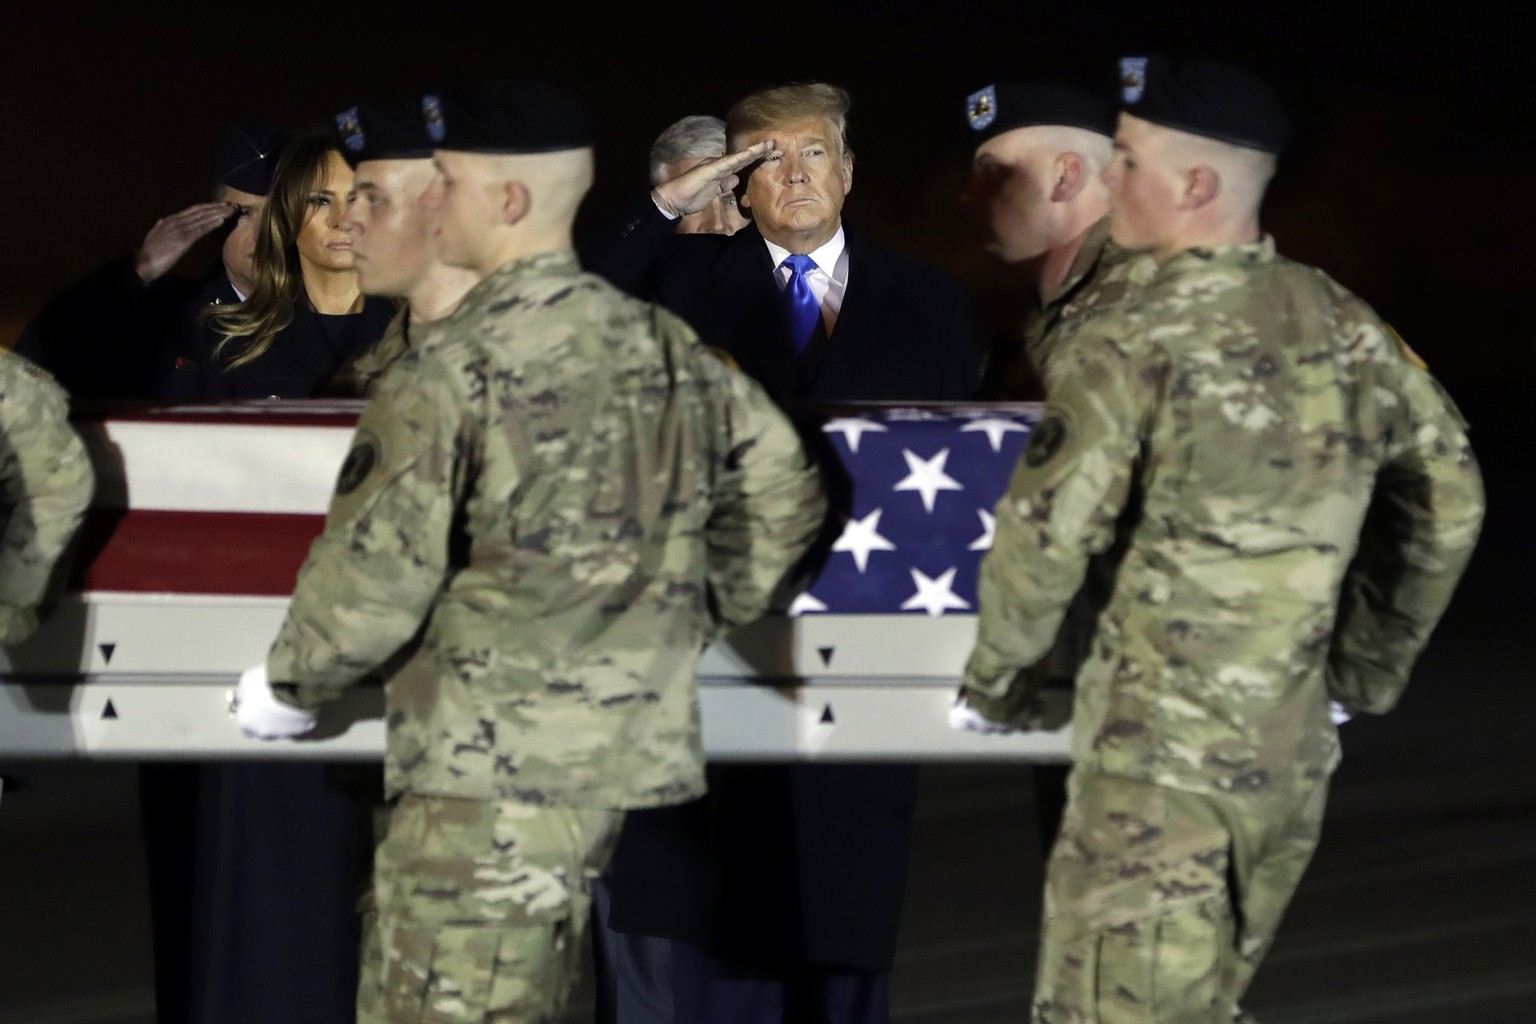 President Donald Trump and first lady Melania Trump watch as a U.S. Army carry team moves a transfer case containing the remains of Chief Warrant Officer 2 David C. Knadle, of Tarrant, Texas, Thursday, Nov. 21, 2019, at Dover Air Force Base, Del. According to the Department of Defense, Knadle died in Afghanistan when his helicopter crashed while providing security for troops on the ground in eastern Logar Province. (AP Photo/ Evan Vucci) Donald Trump